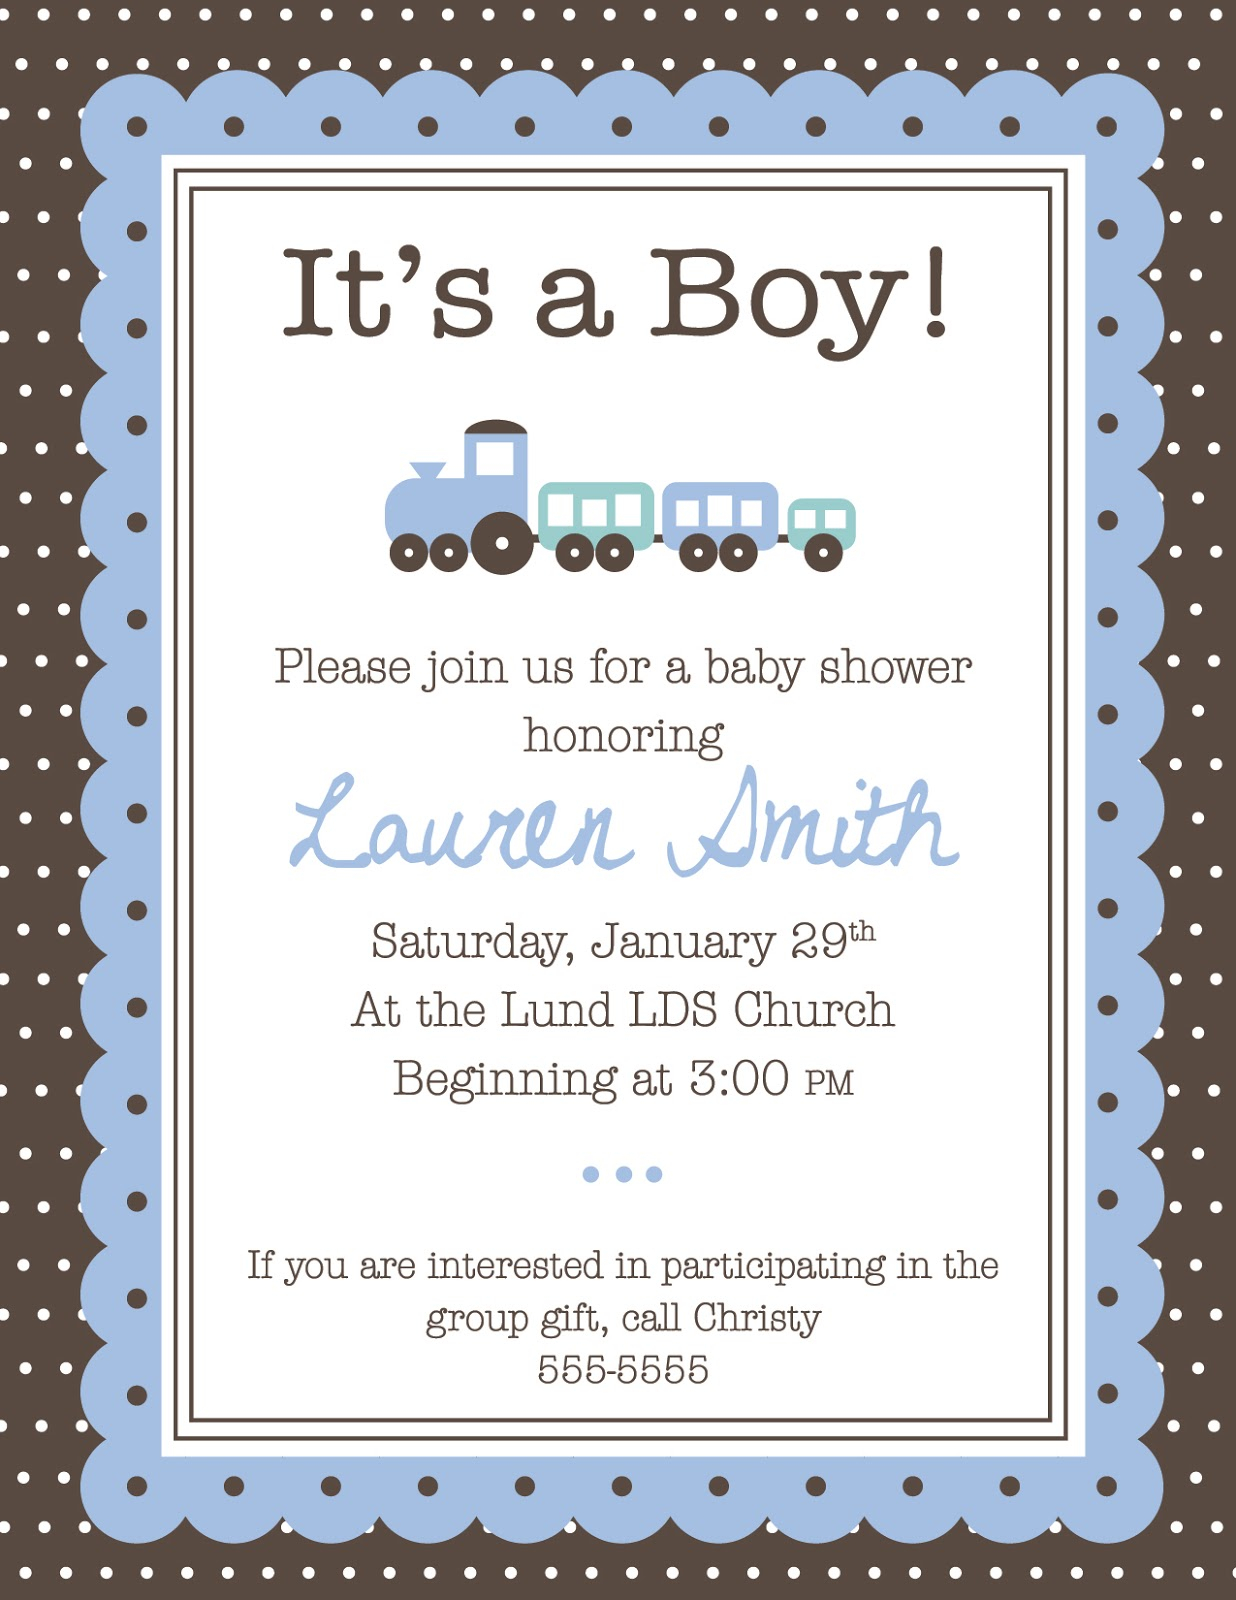 Fancy Ideas For Baby Shower Invitations For A Boy | Omega-Center regarding Baby Boy Baby Shower Invitations